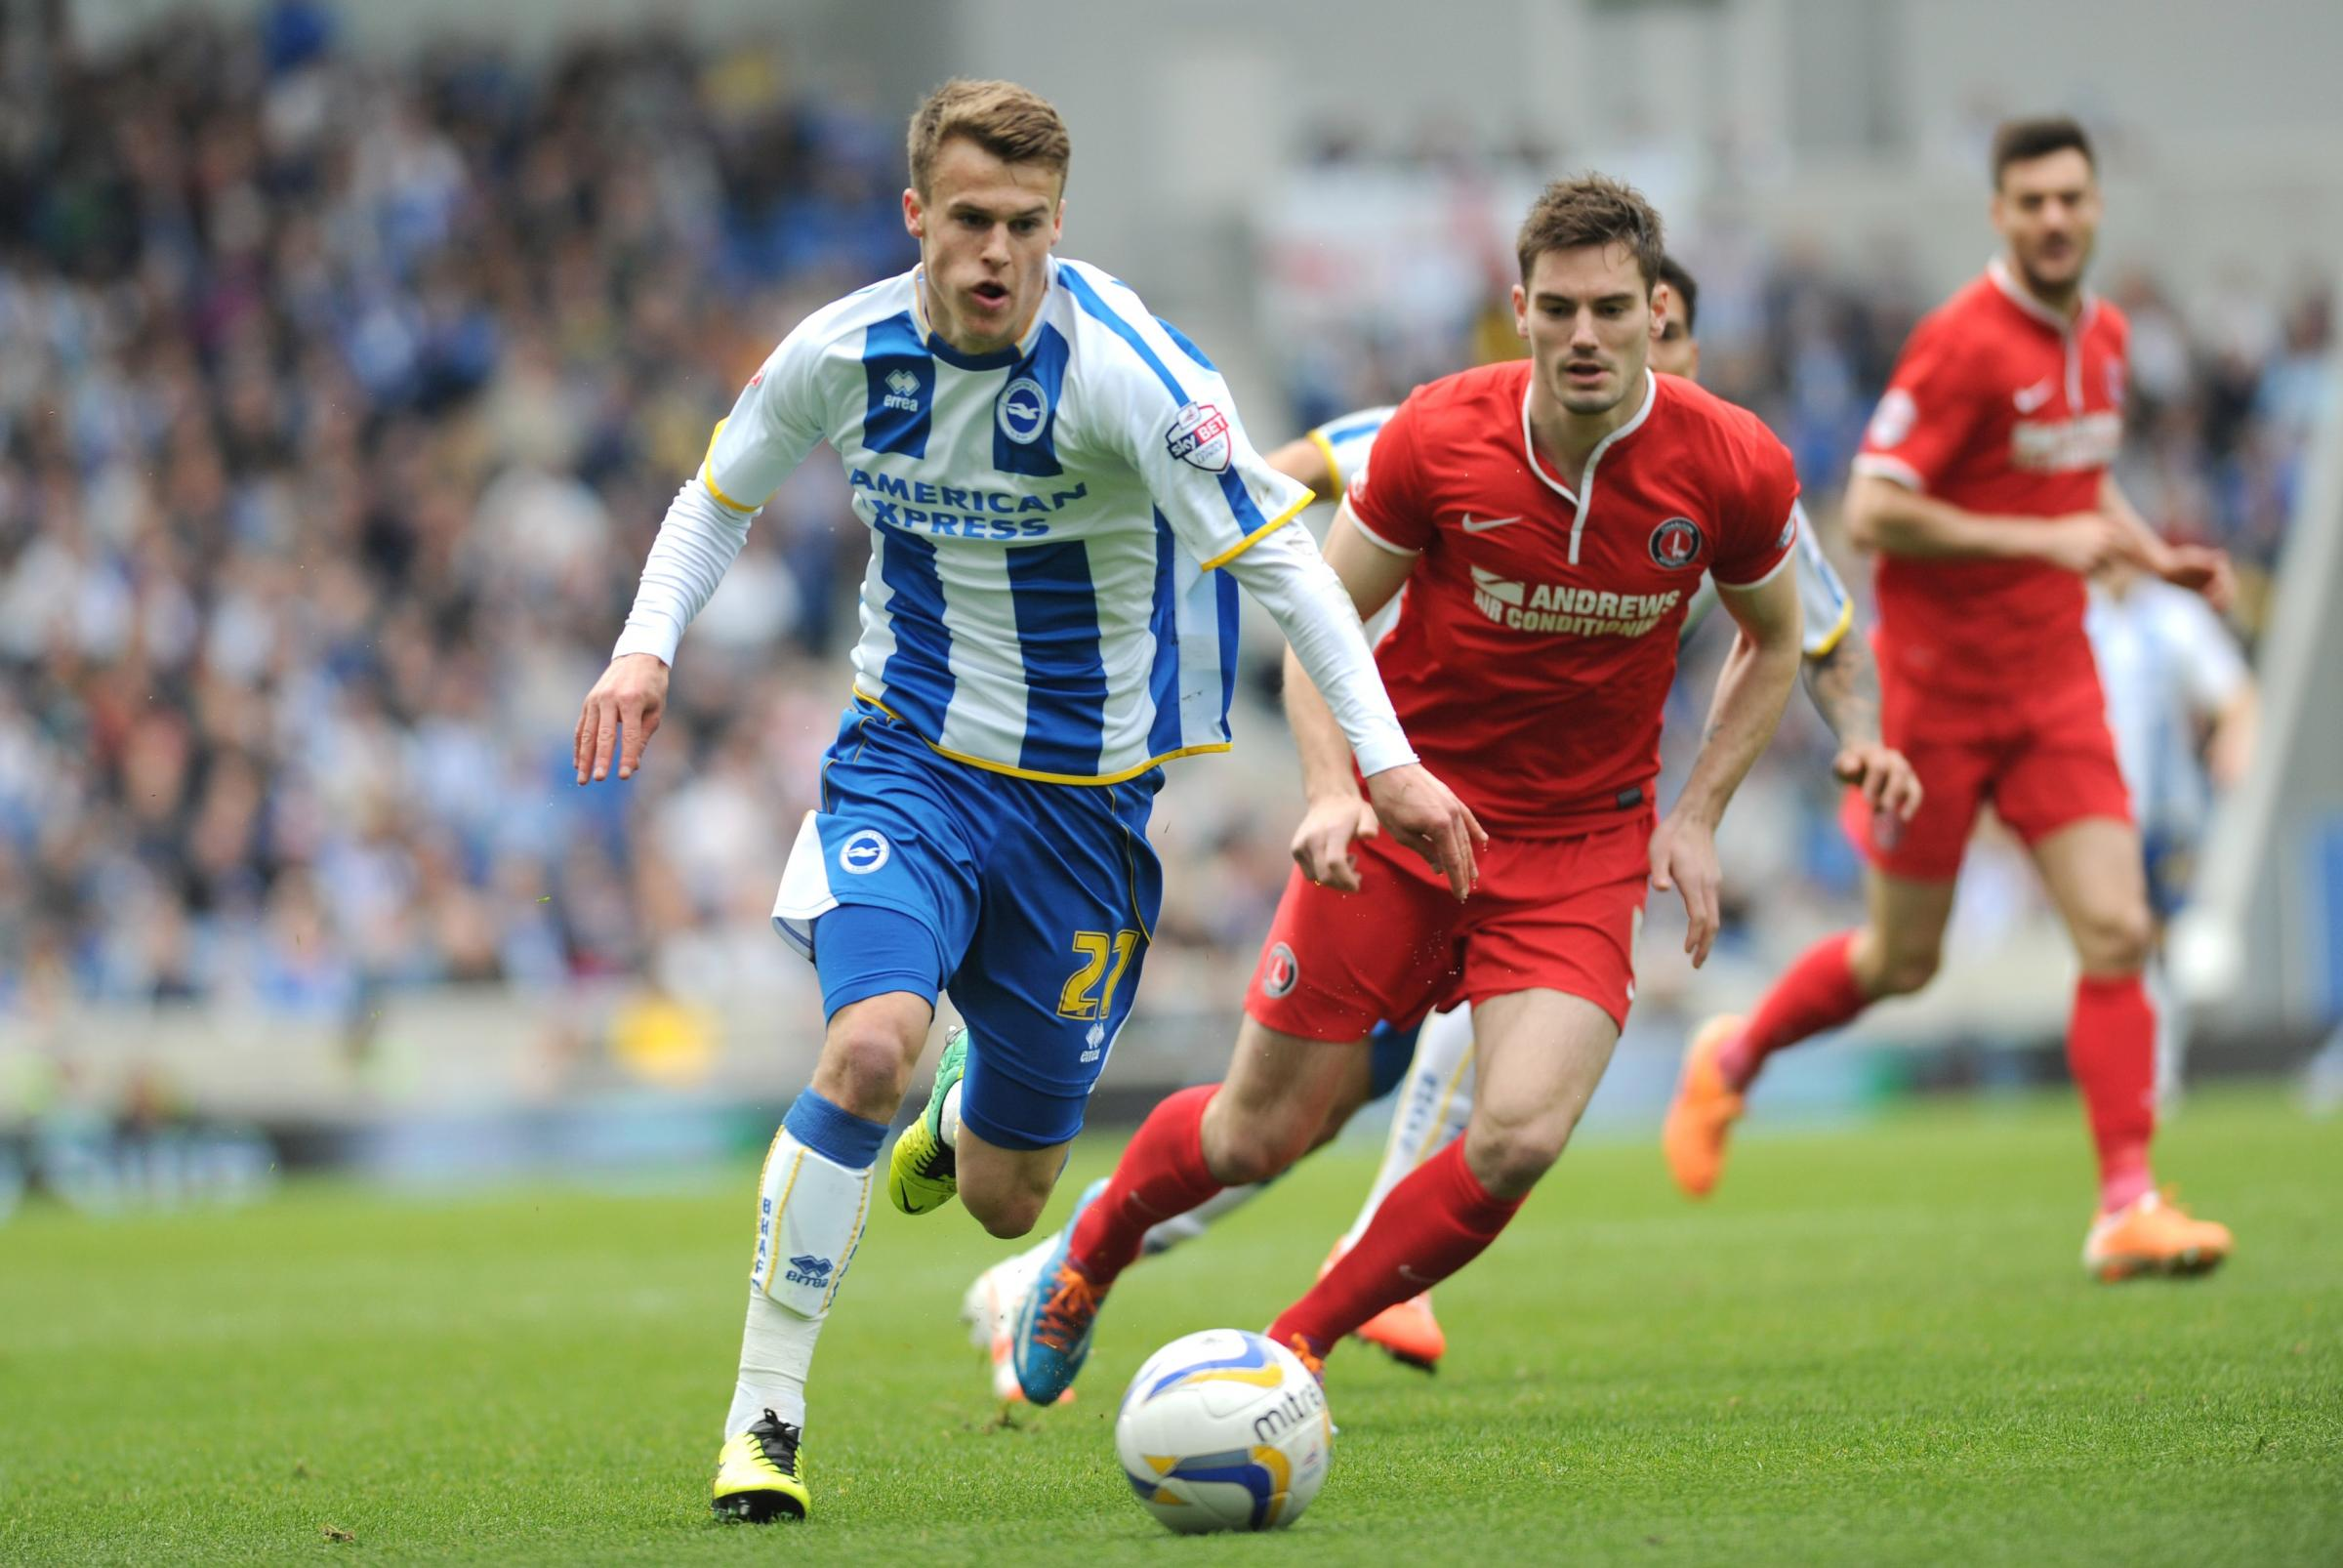 Solly March says his dad tells him what he does wrong - but he welcomes the advice